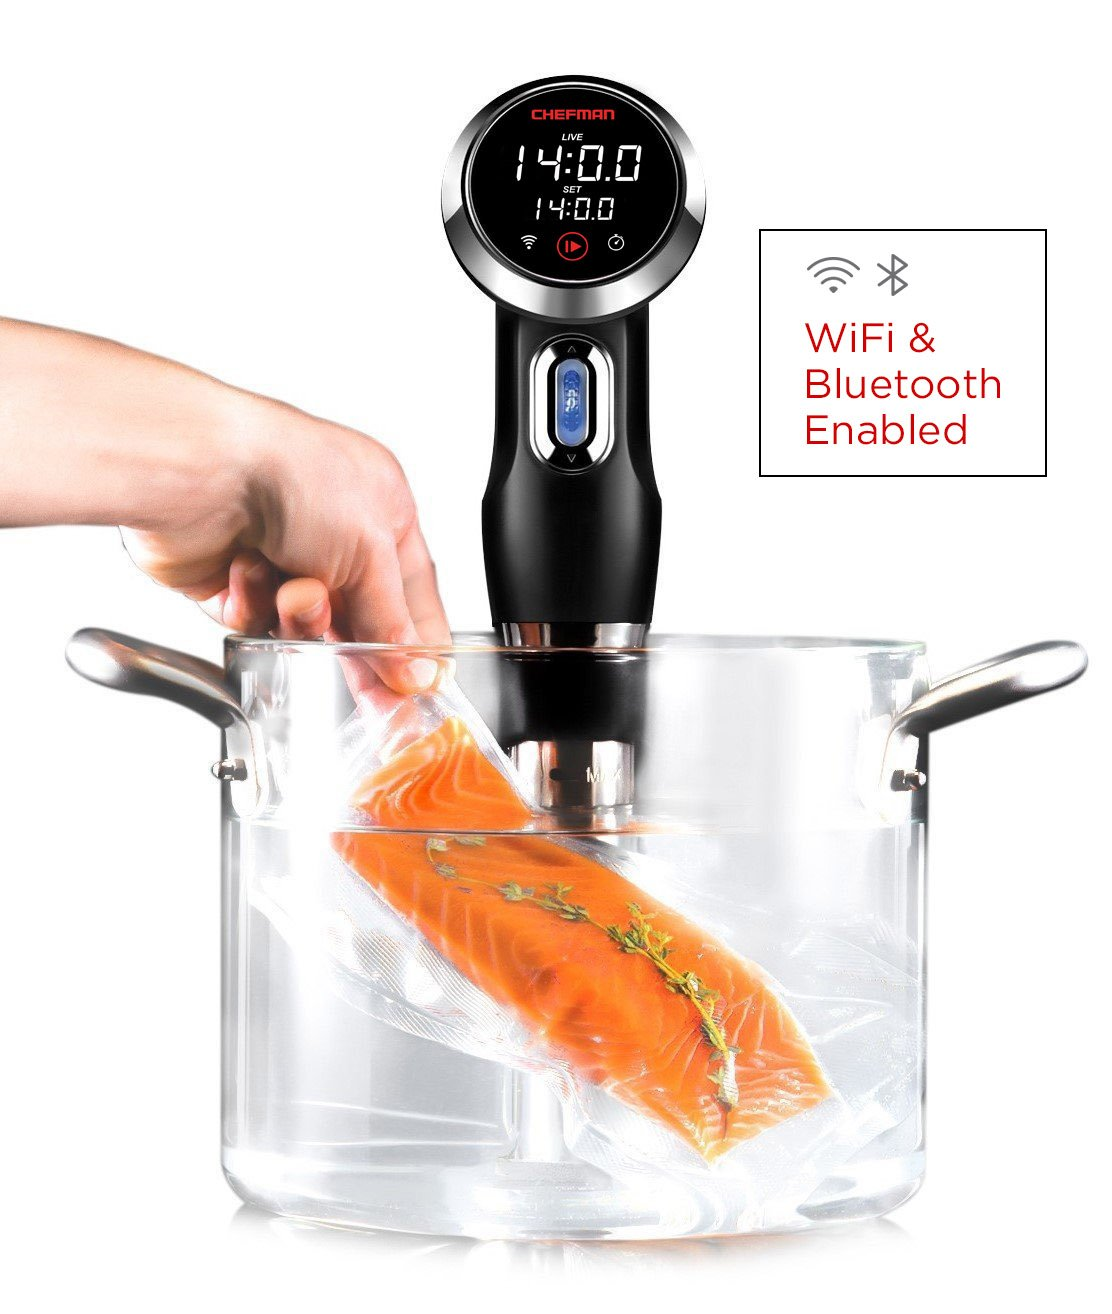 Chefman Immersion Circulator w/Wi-Fi Bluetooth & Digital Interface Touchscreen Display, Sous Vide Cooker Includes Connected App for Guided Cooking, Adjustable Clamp, 1100 Watts, WiFi